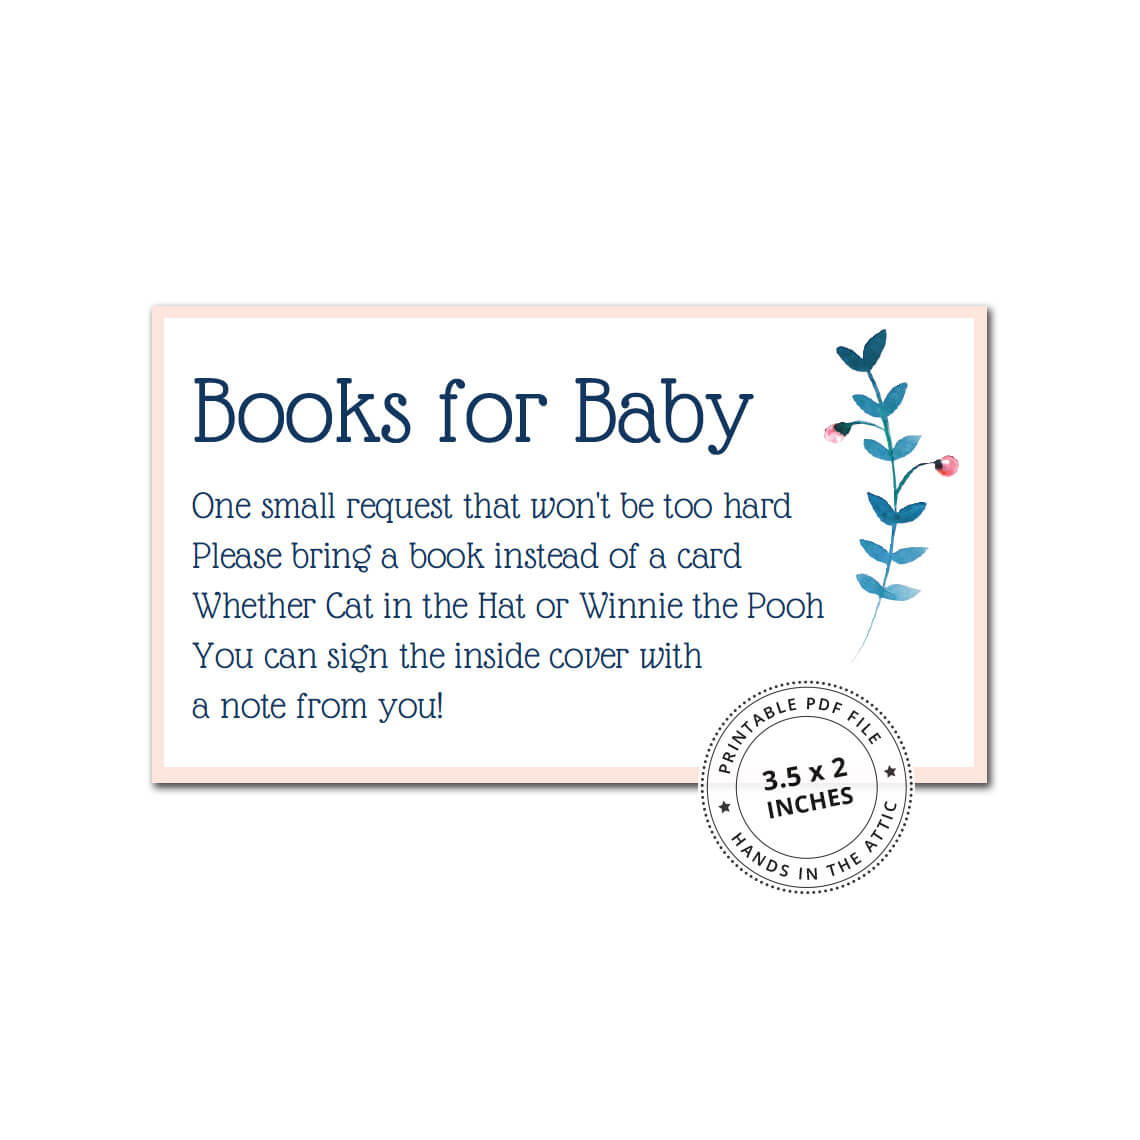 image relating to Bring a Book Instead of a Card Printable identified as Carry a E book alternatively of a Card